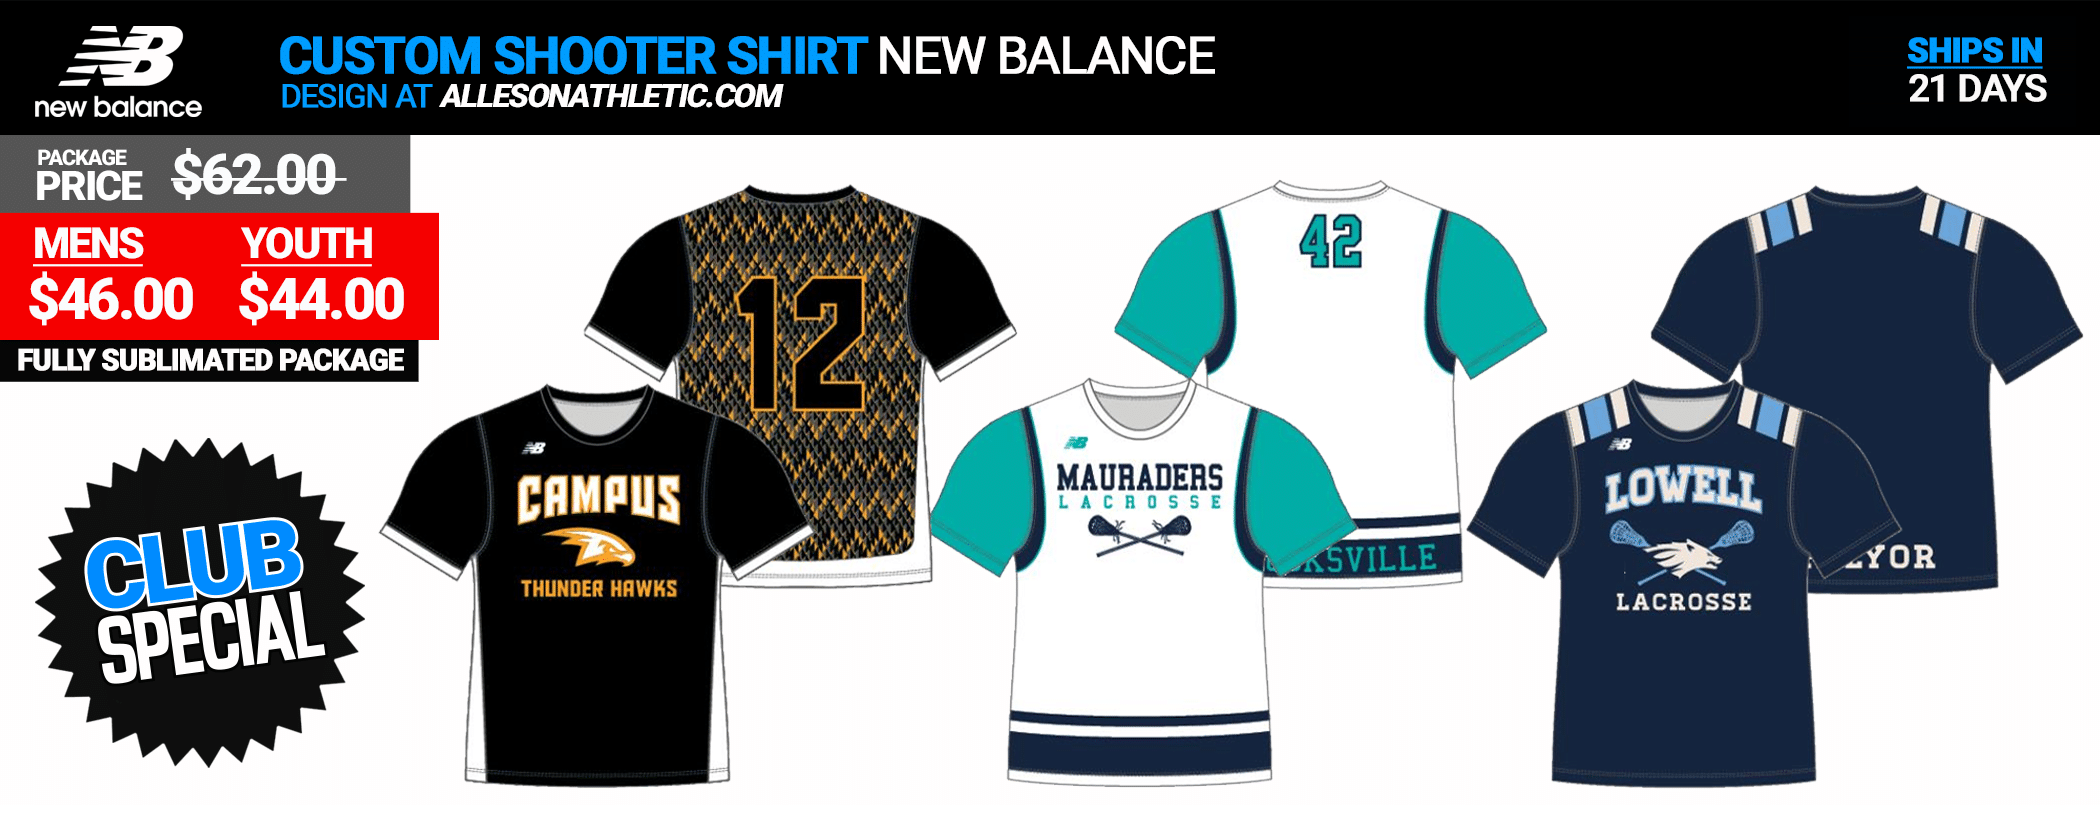 New Balance Custom Shooters Shirt